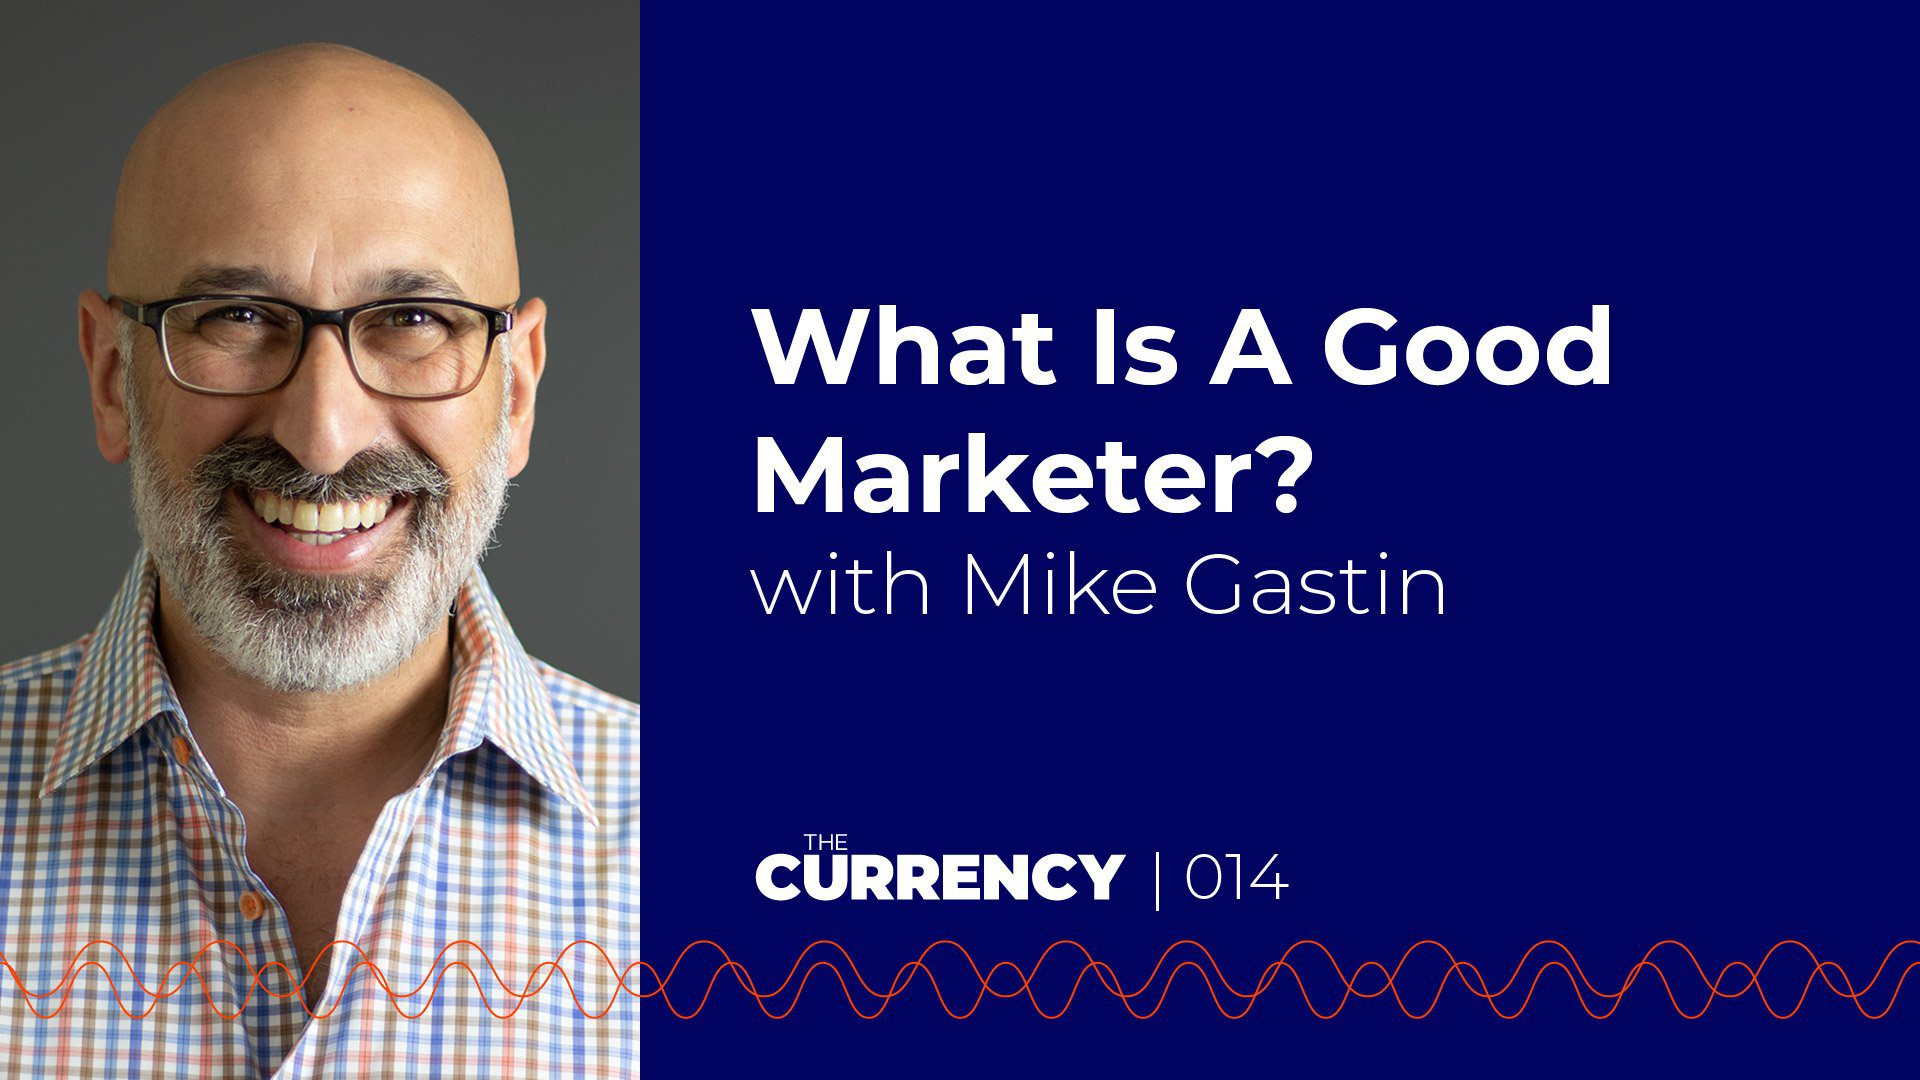 Mike Gastin, host of The Currency podcast